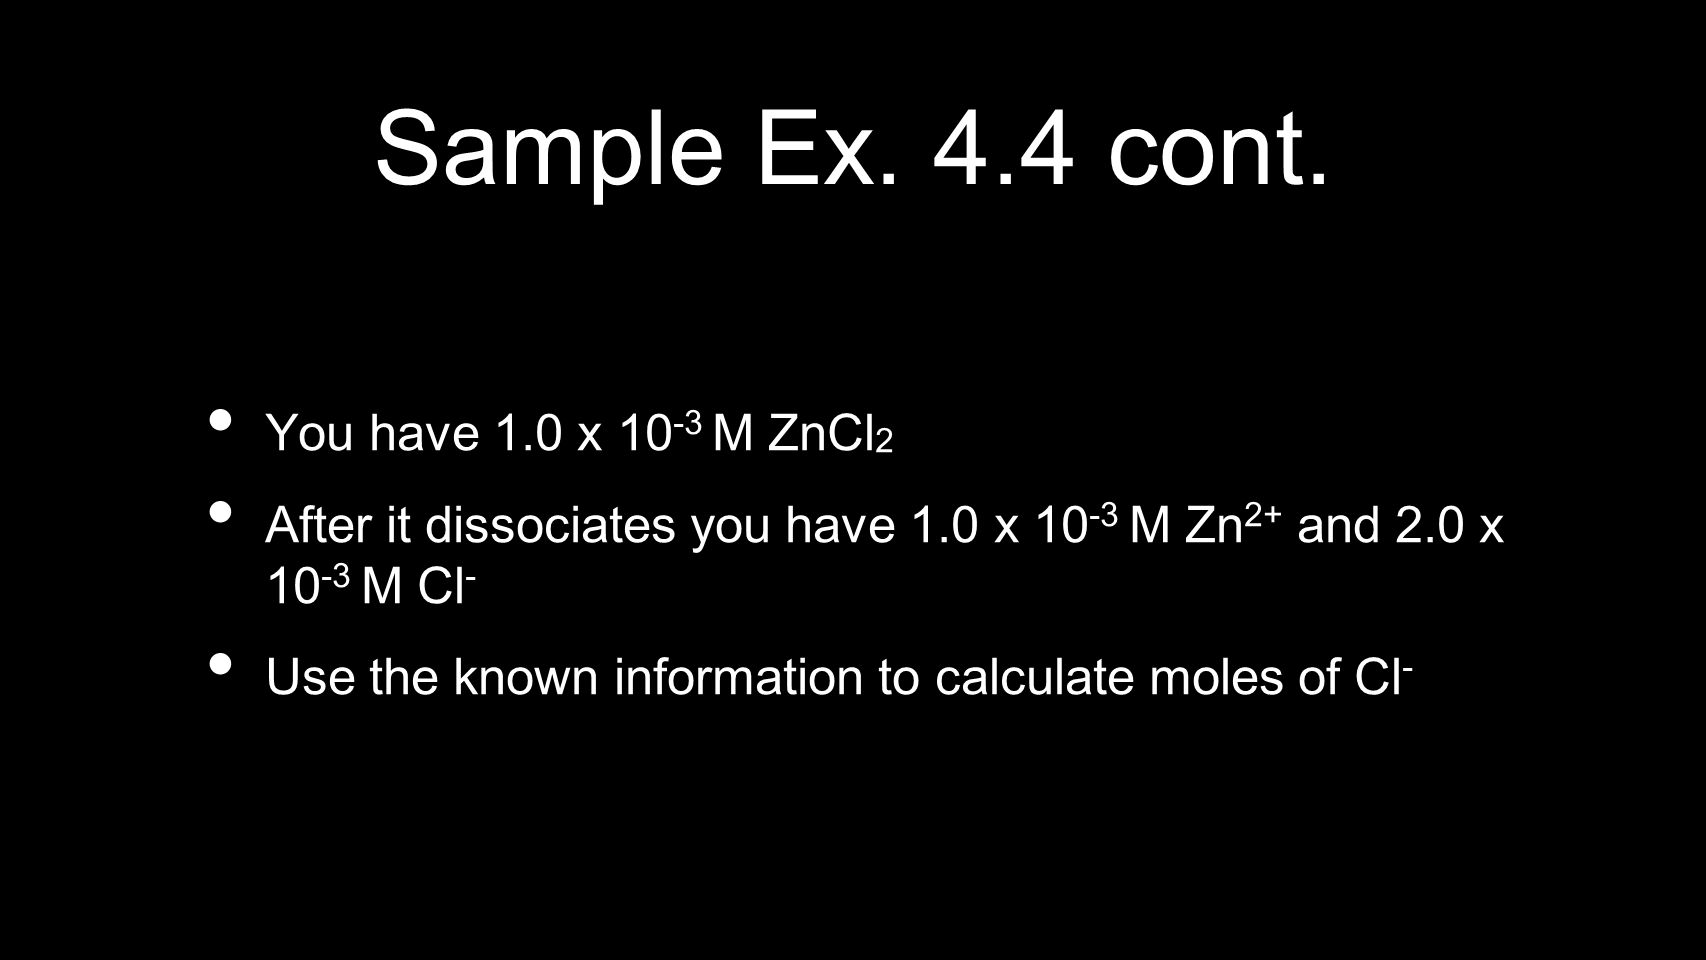 Sample Ex. 4.4 cont. You have 1.0 x 10 -3 M ZnCl 2 After it dissociates you have 1.0 x 10 -3 M Zn 2+ and 2.0 x 10 -3 M Cl - Use the known information